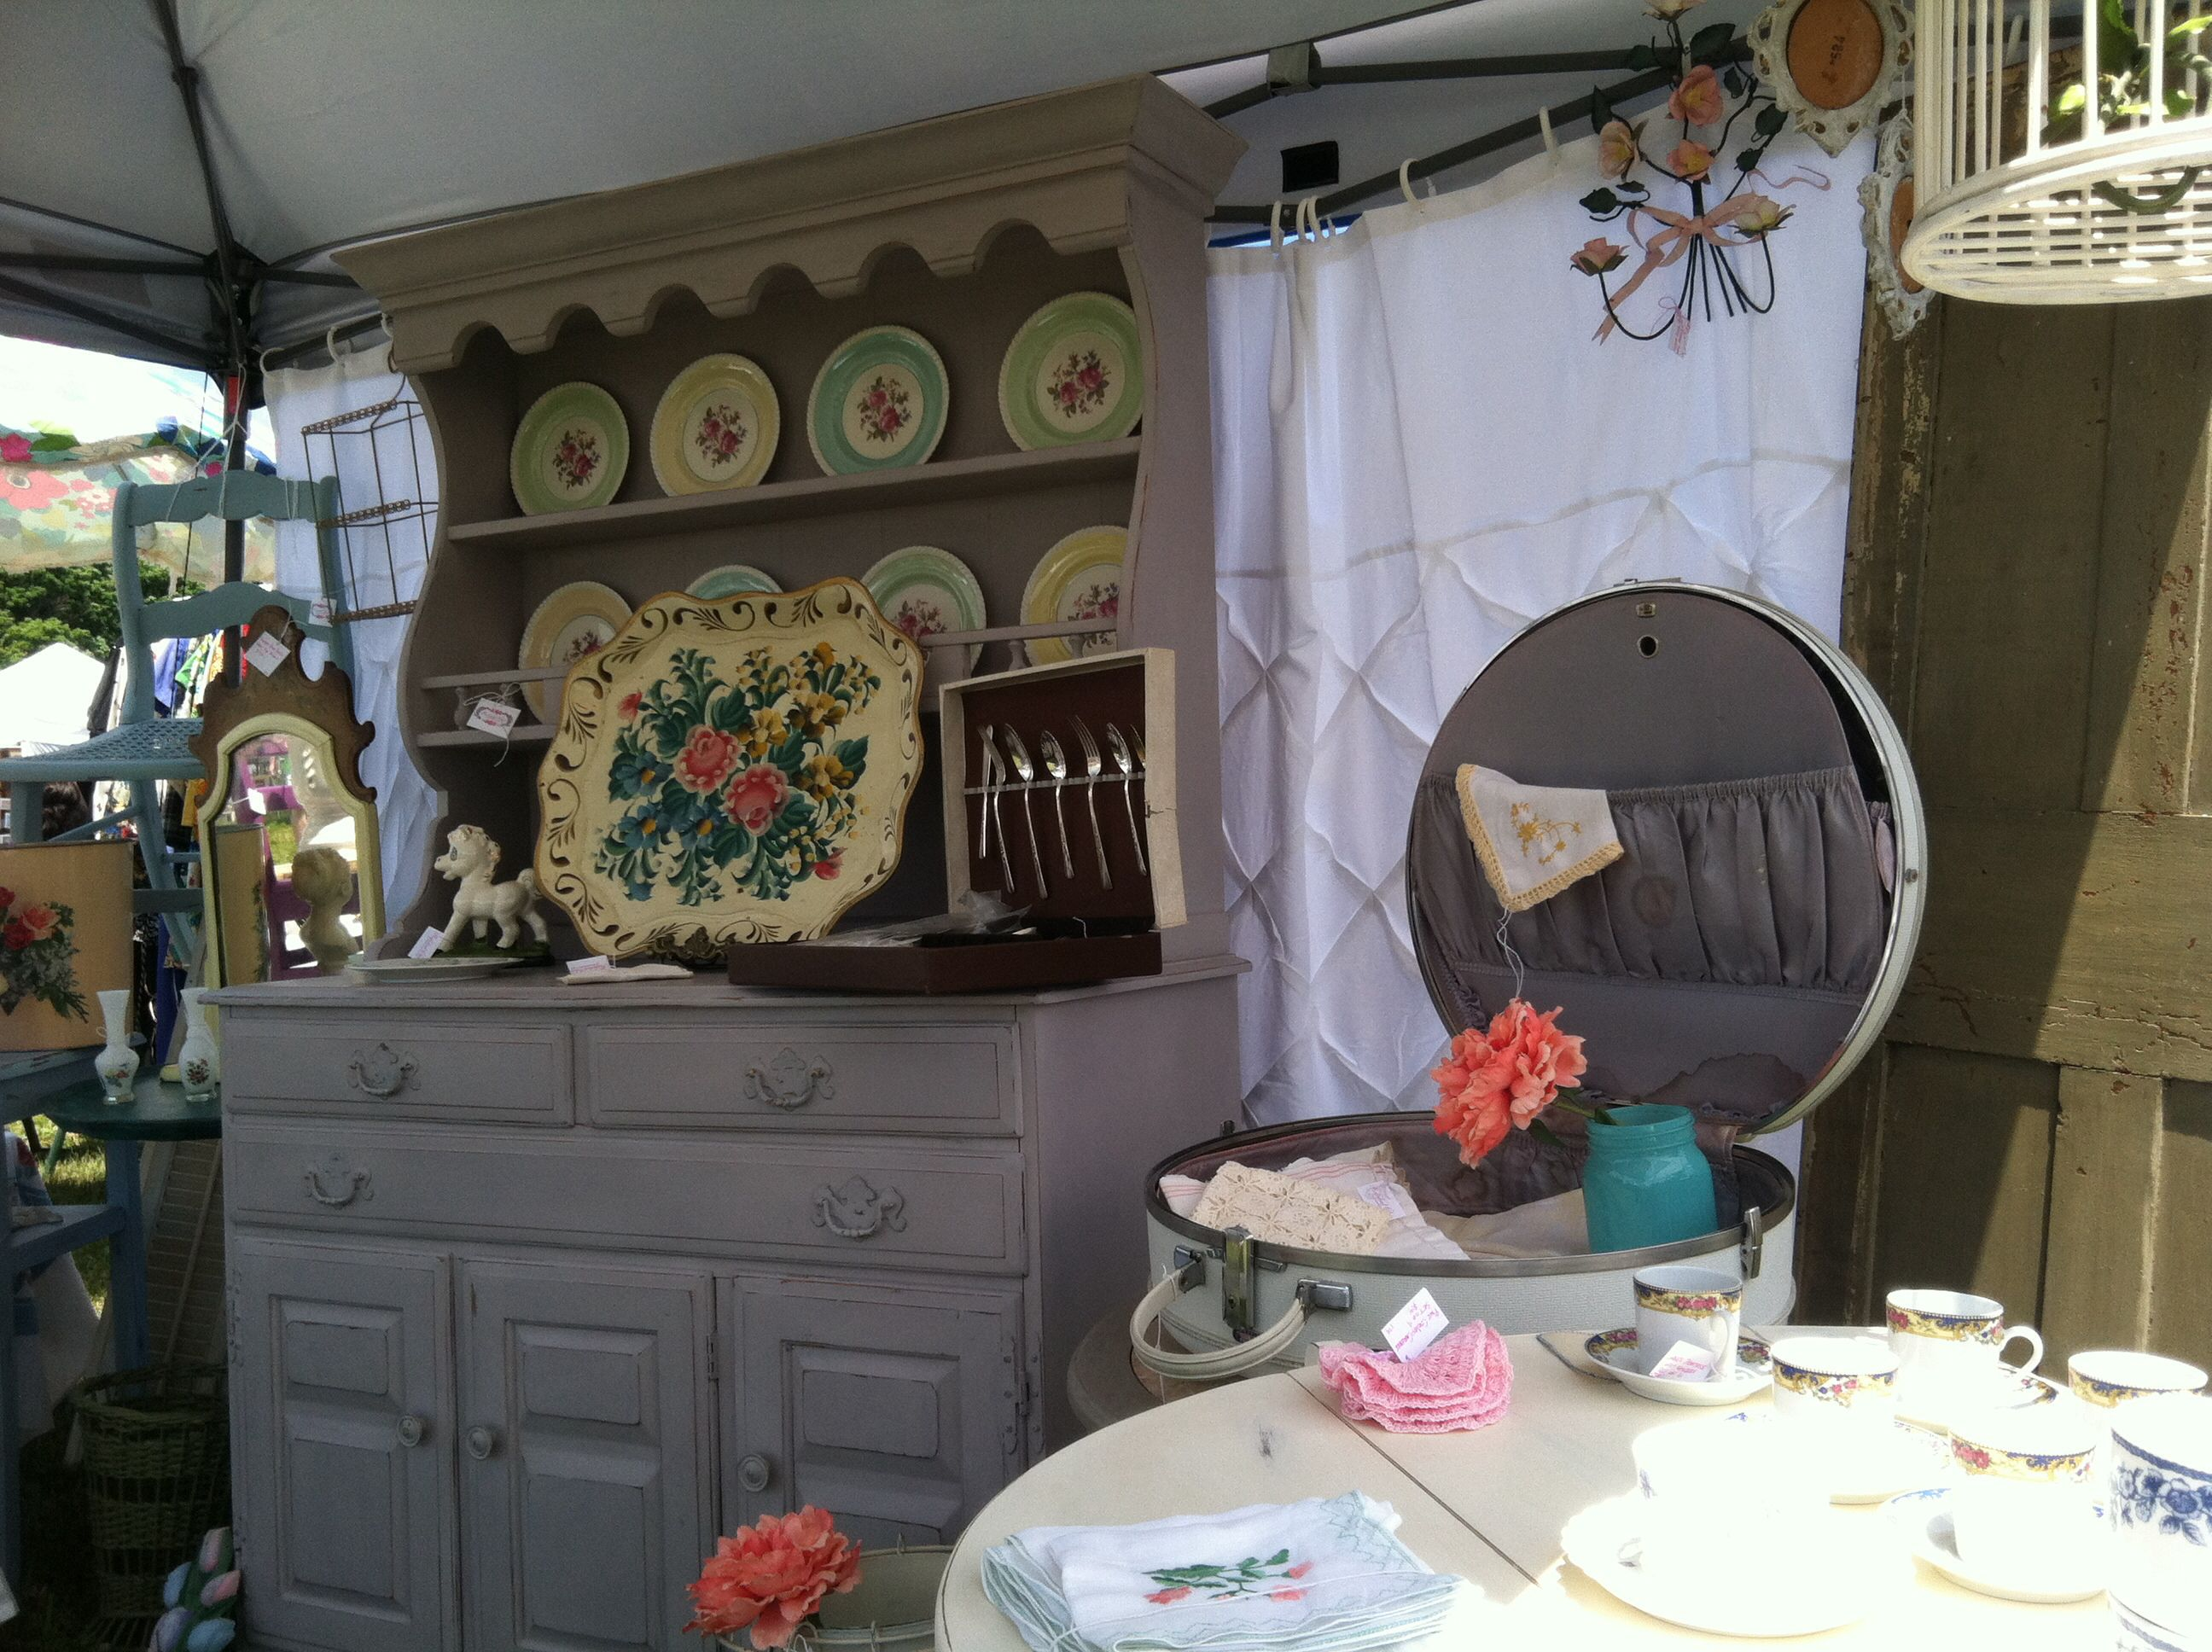 Our booth at the vintage market- Salem ct.  Www.refabedchic.com @refabedchic #refabedchic #fleamarketdecor